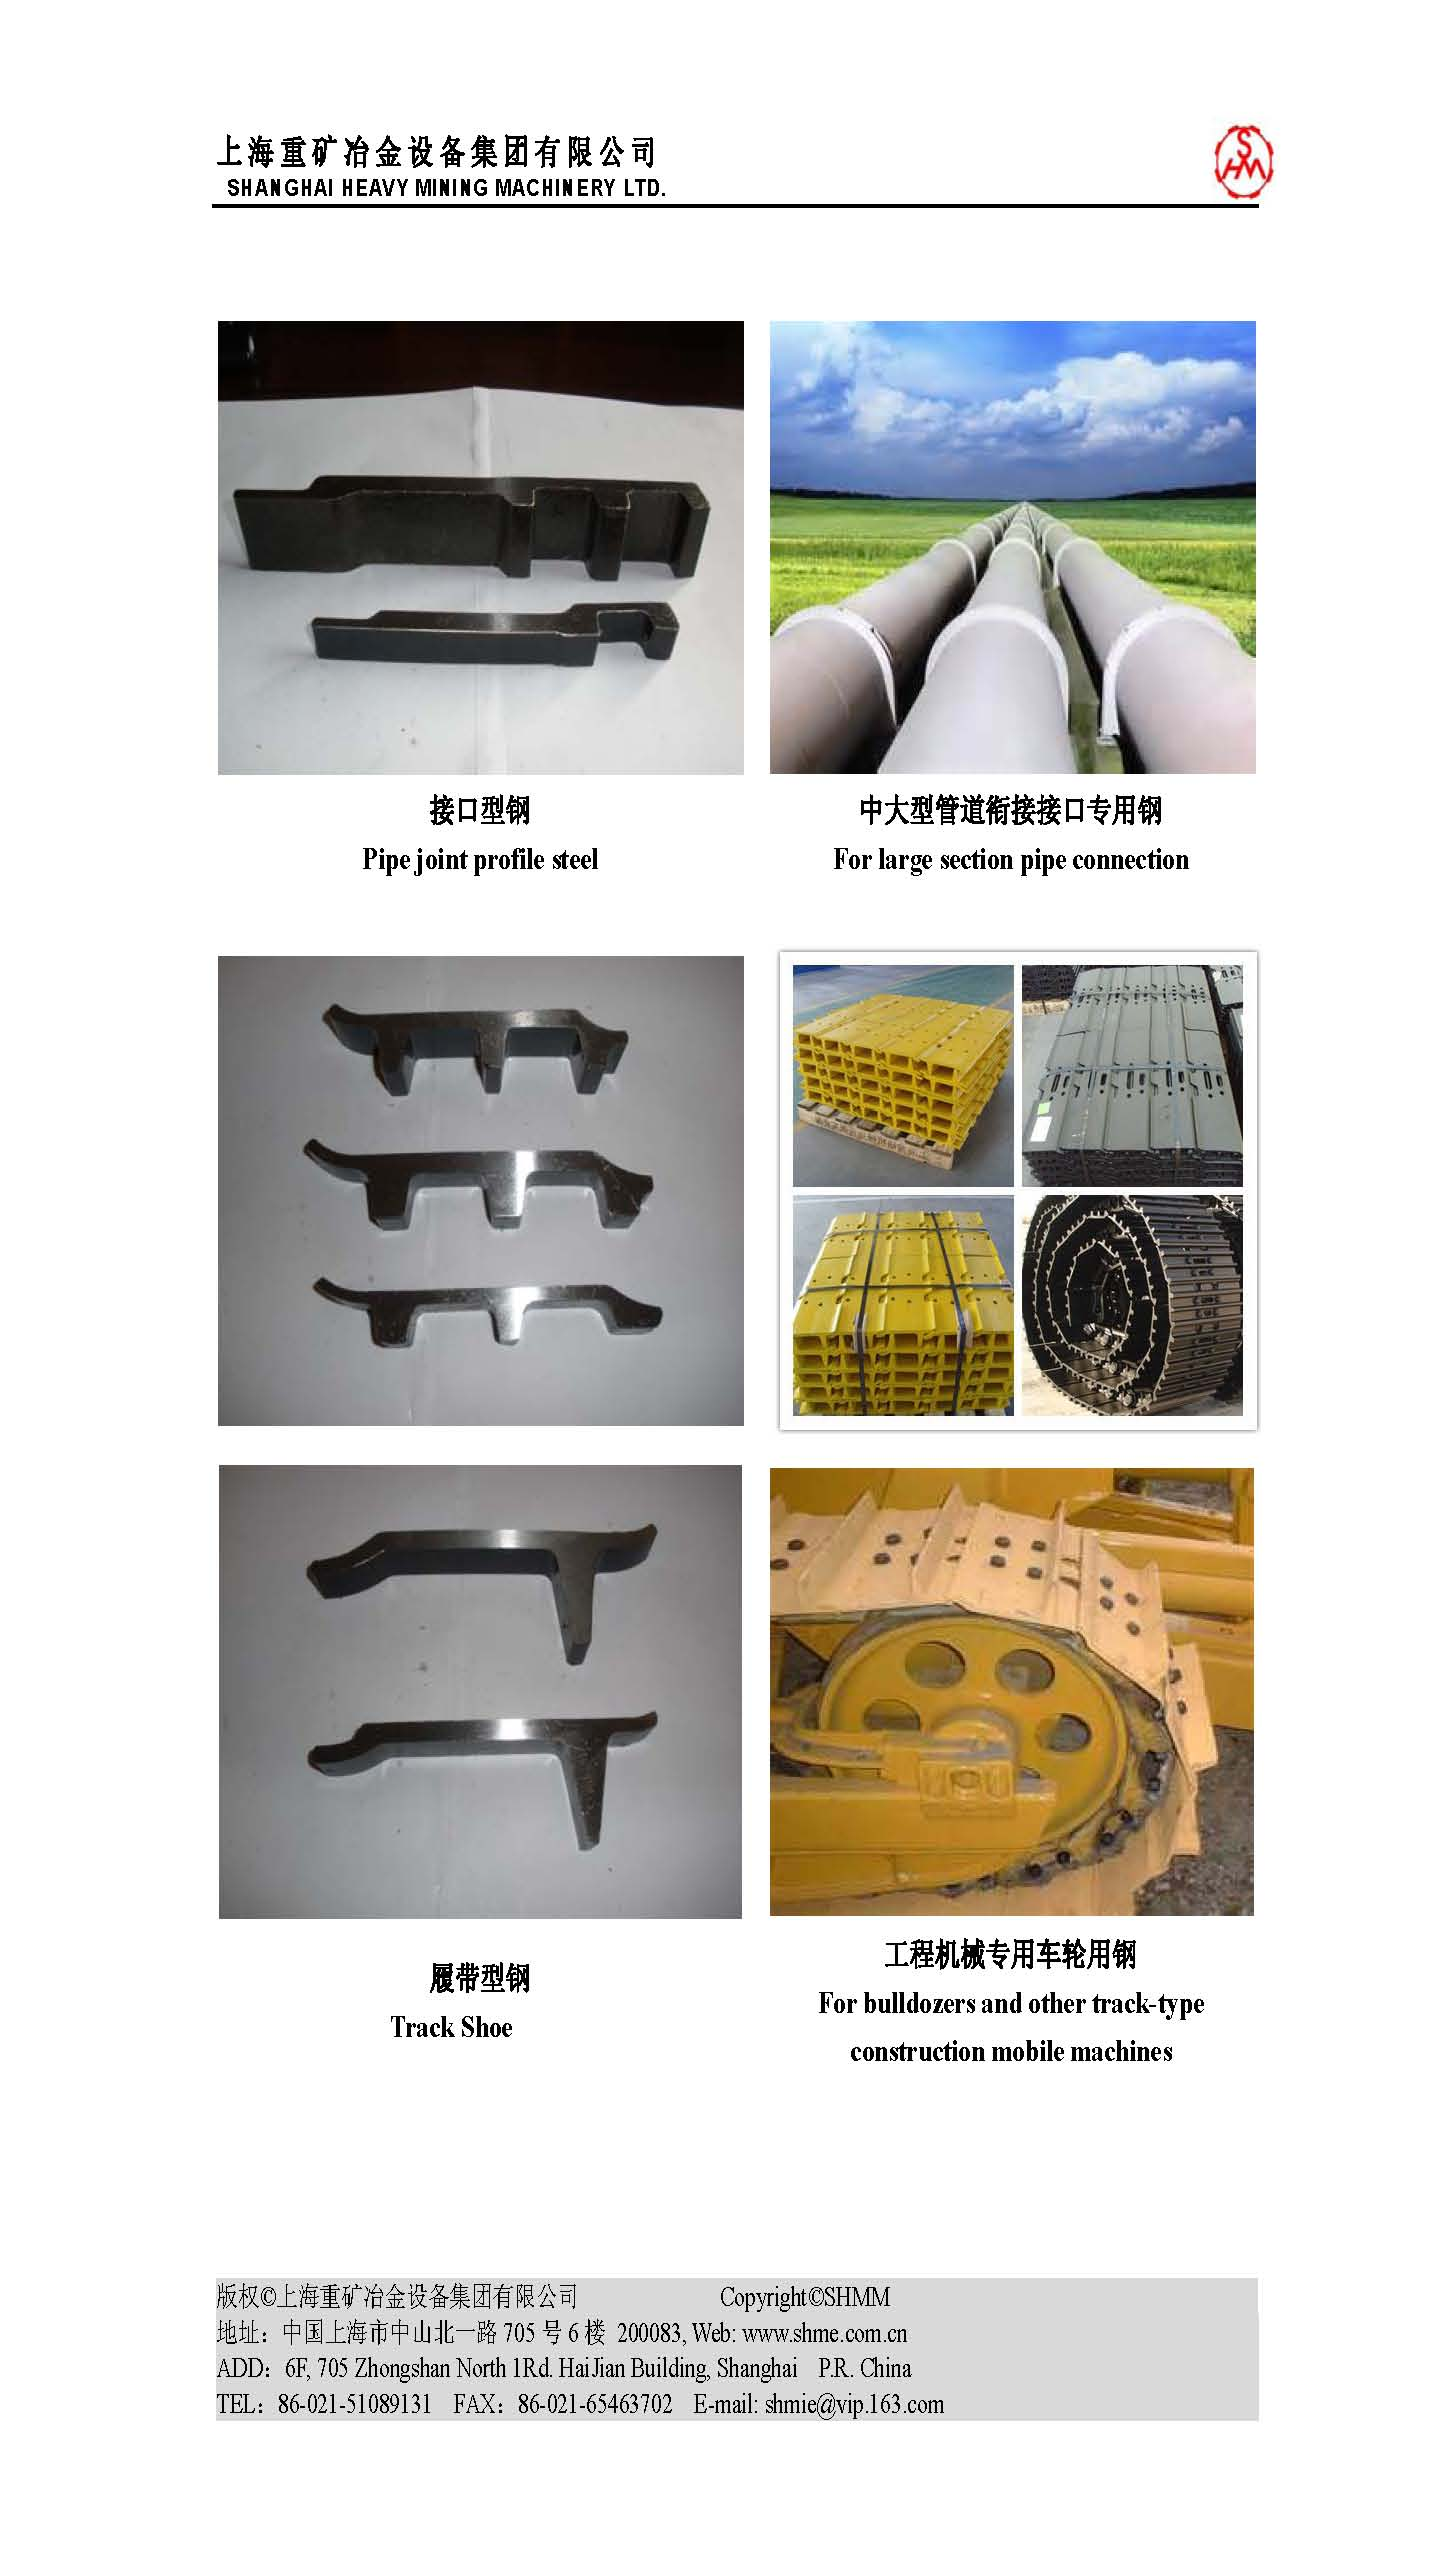 Special Profile-Section Steel and application